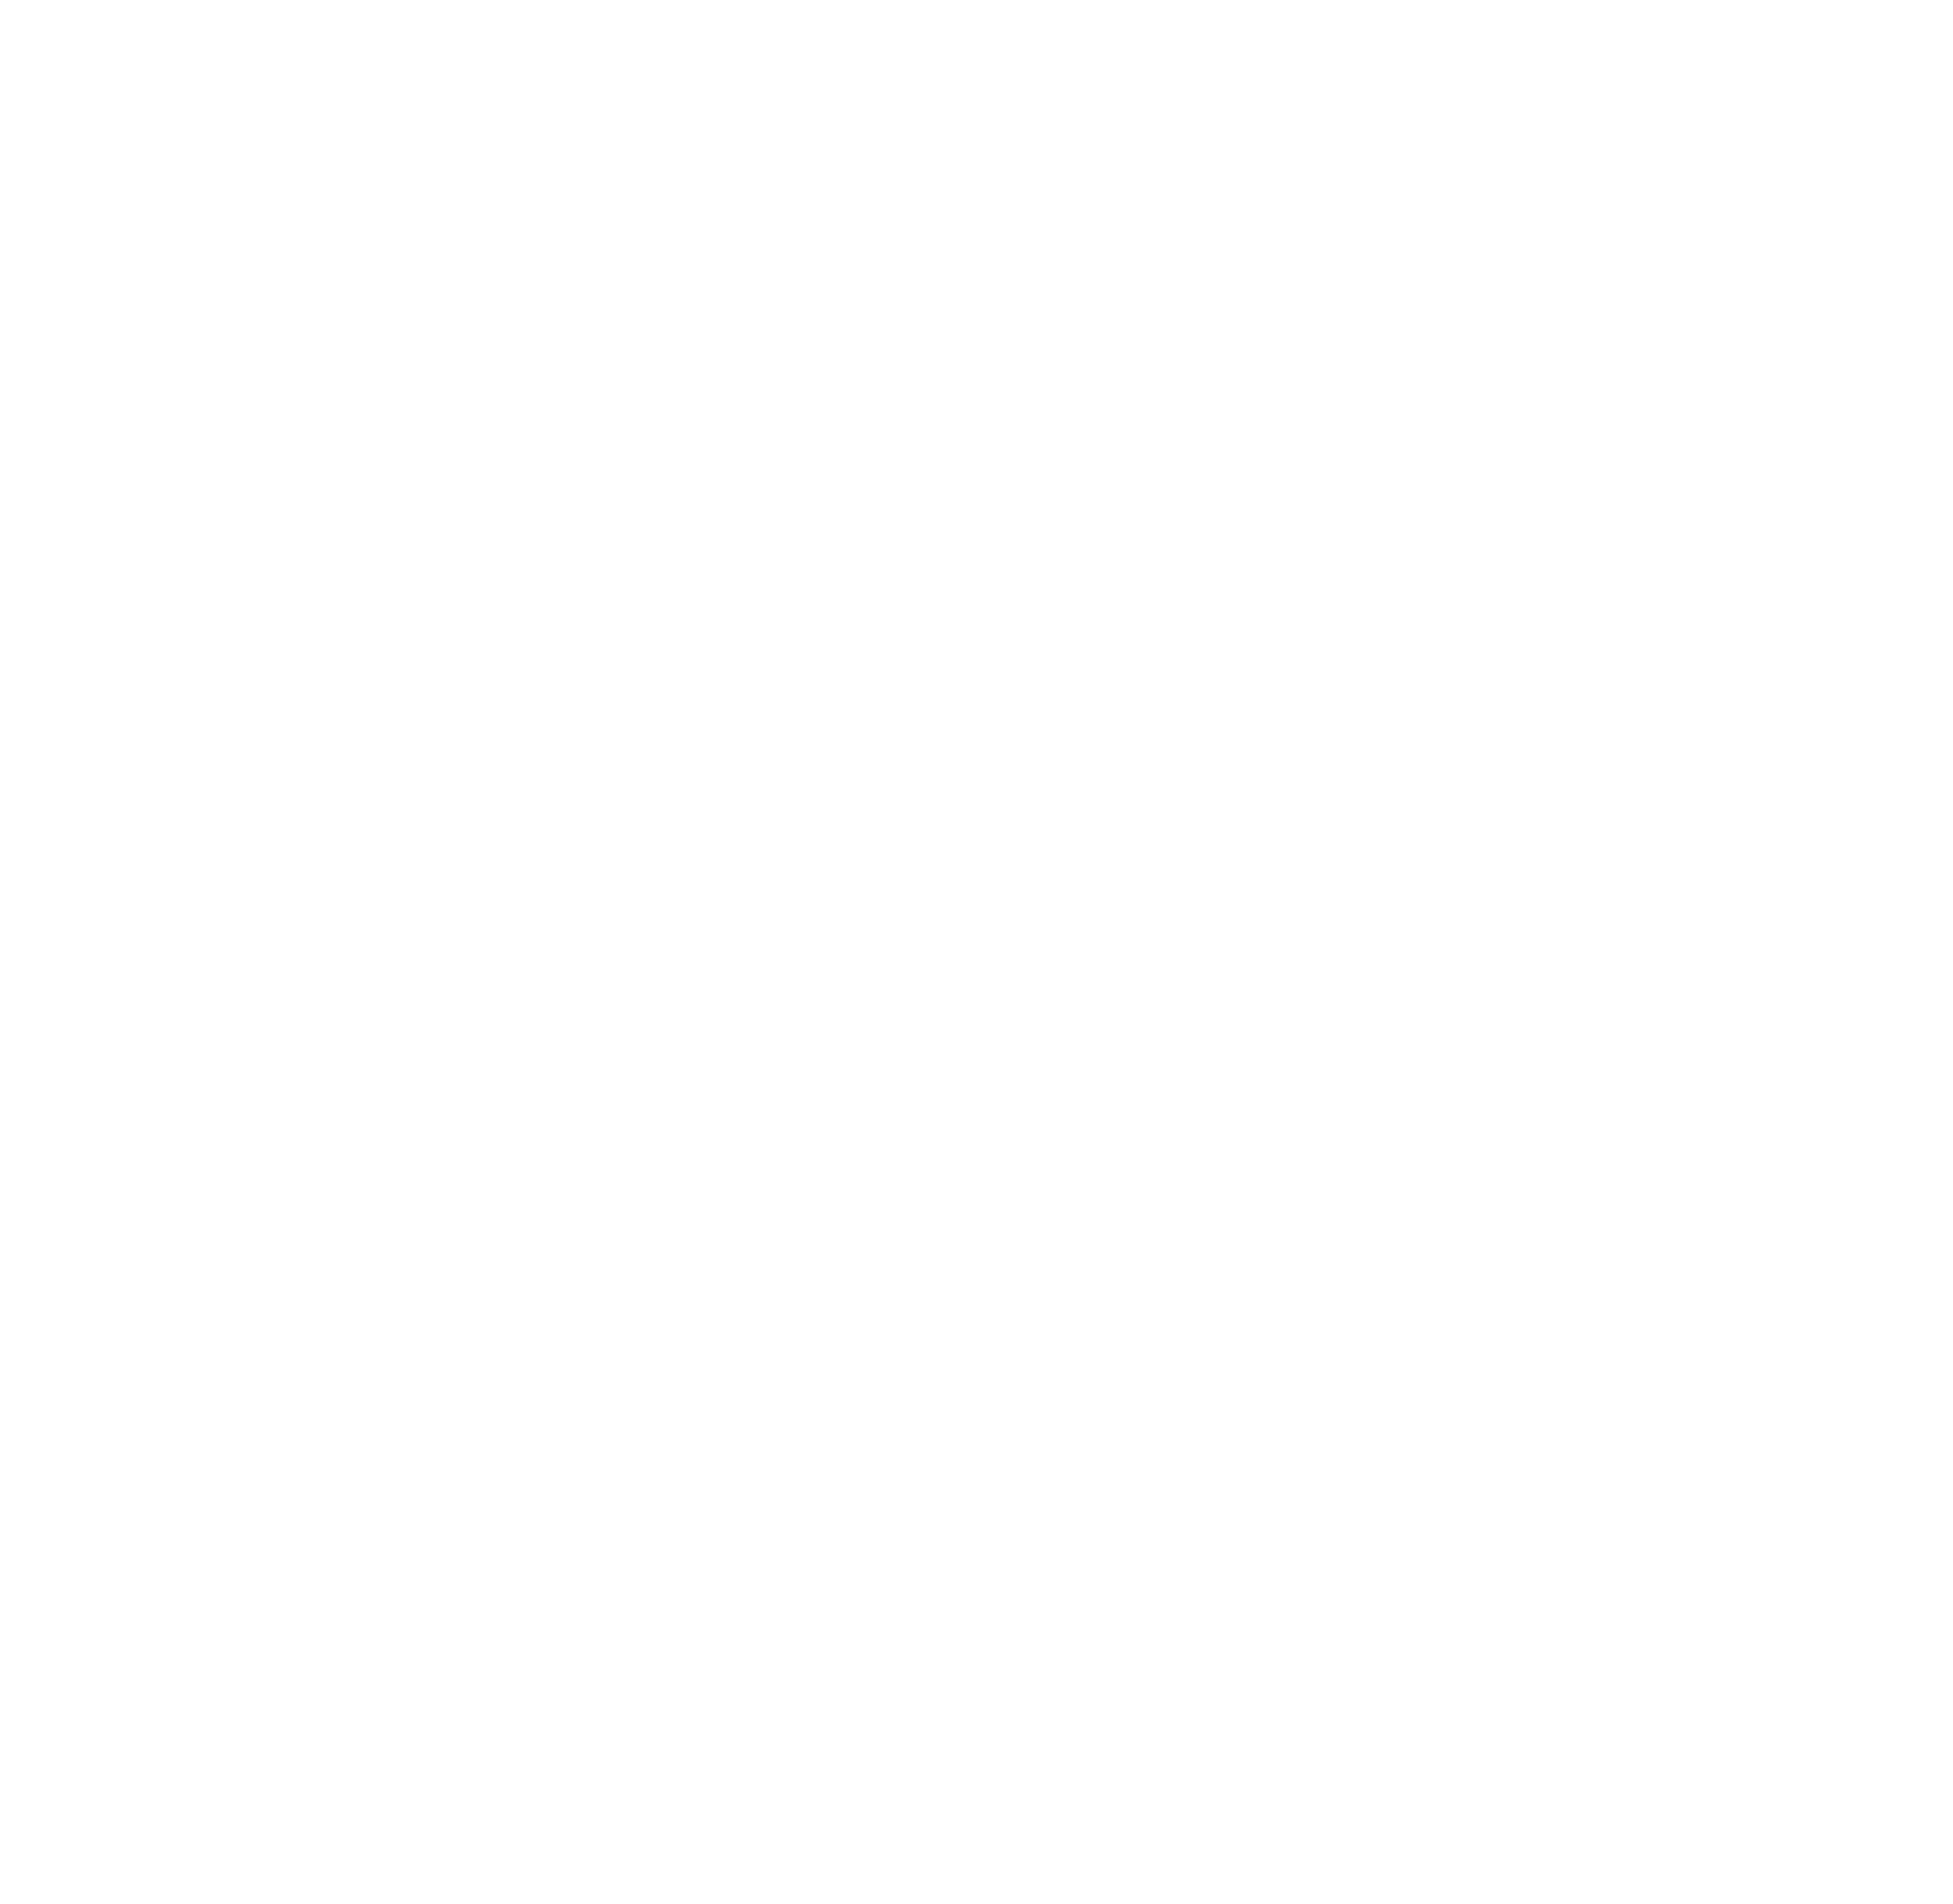 harlow hotel logo with estd. 1882